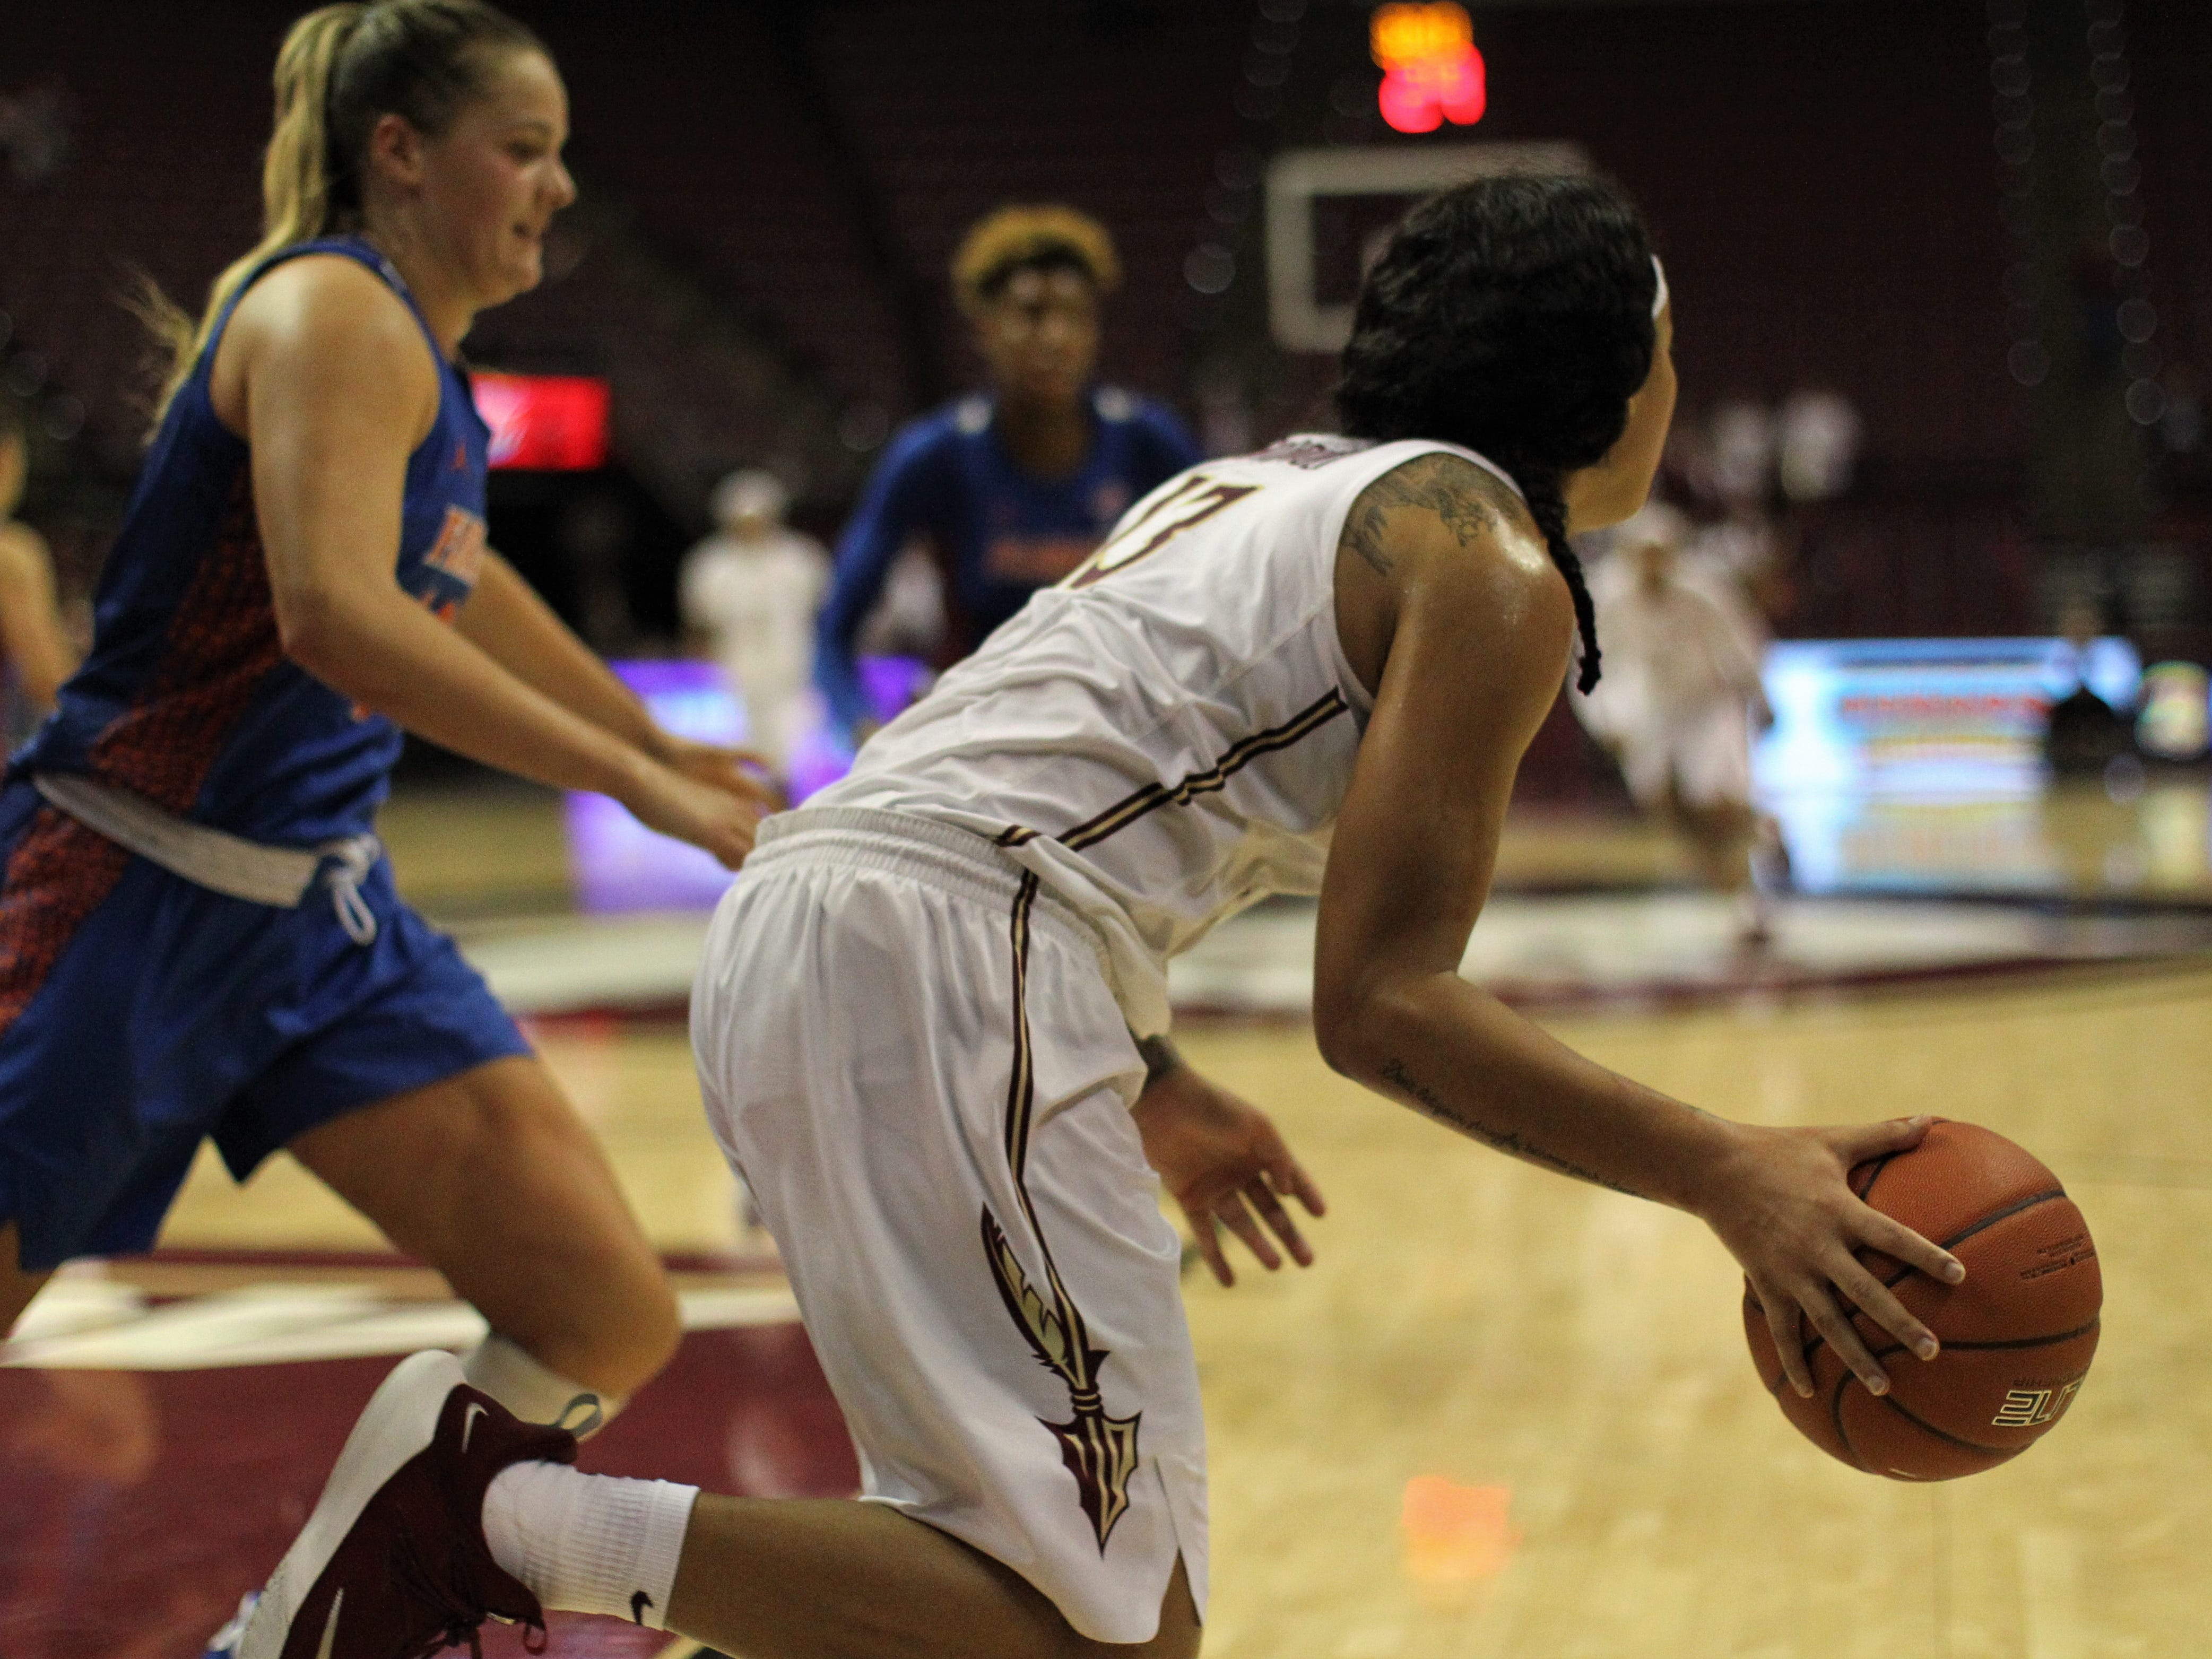 Florida State's Nausia Woolfolk runs out the final second during the second half of the Seminoles' game against Florida at the Tucker Civic Center on Nov. 11, 2018.